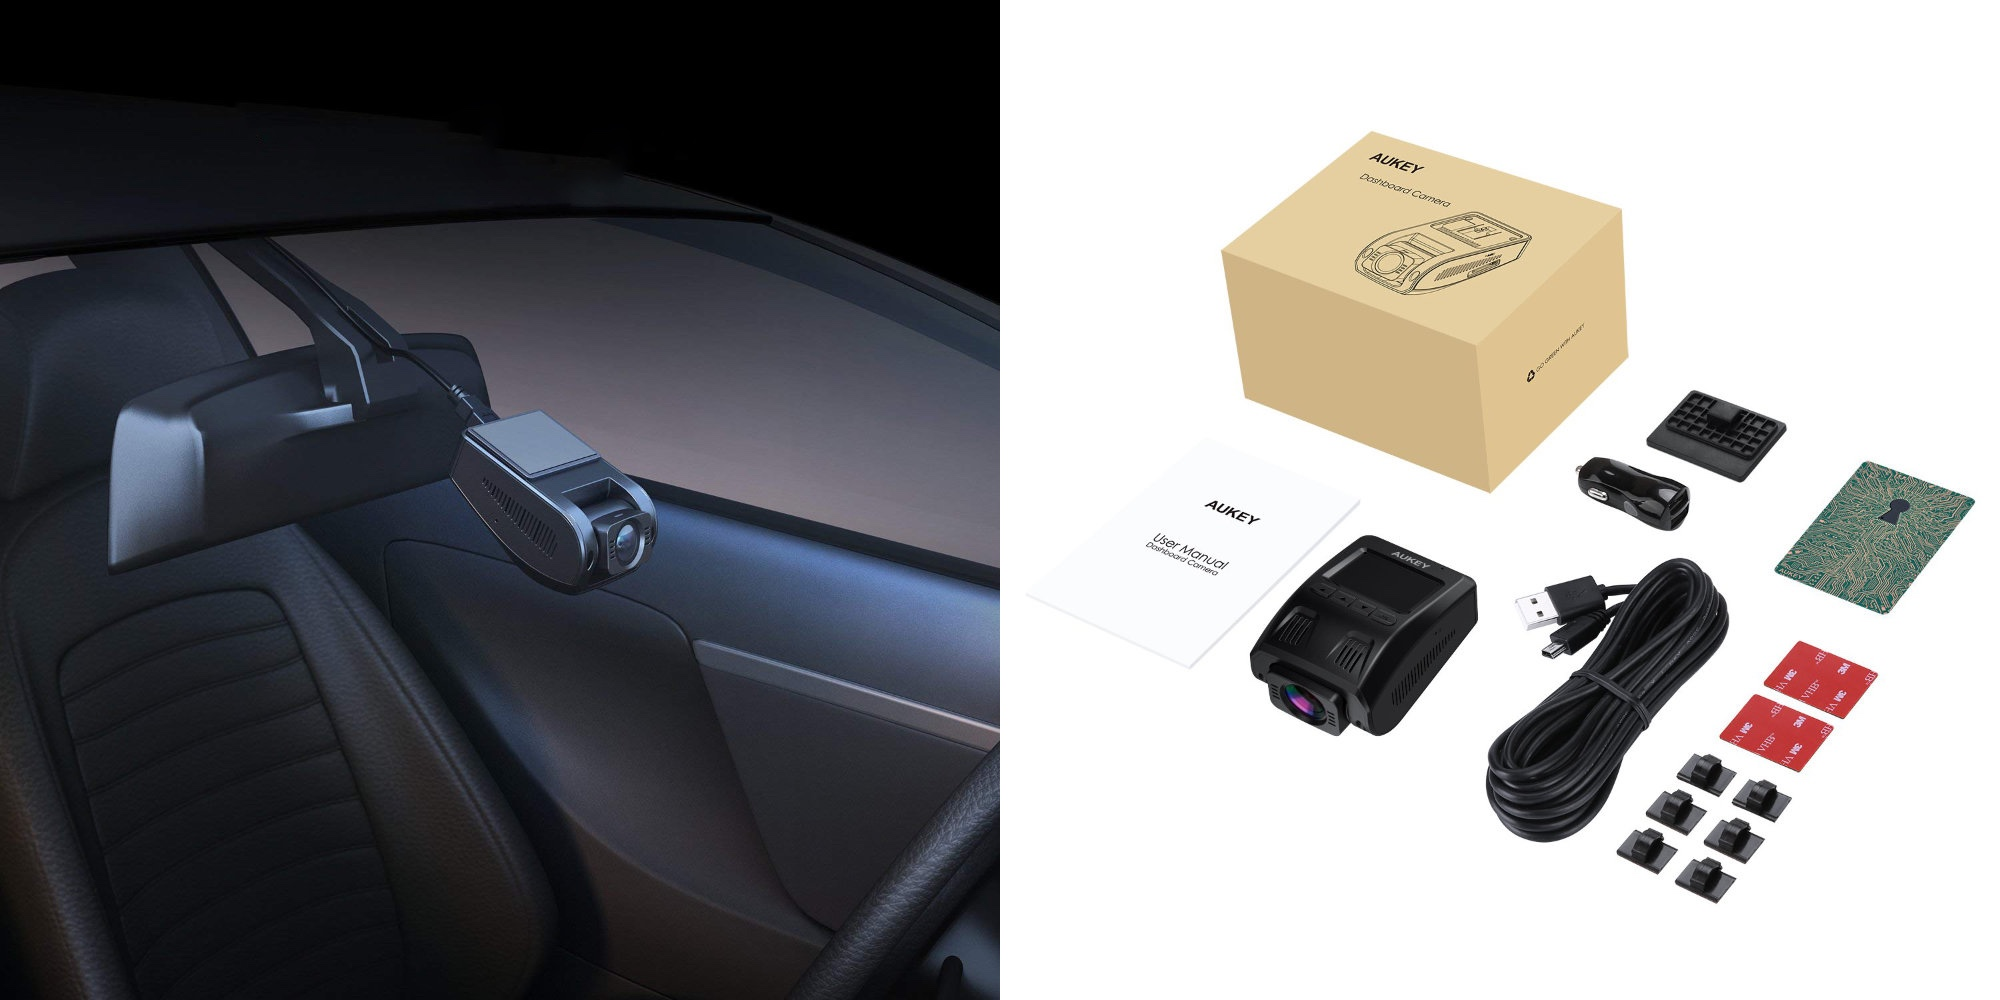 This Aukey 1080p Dash Cam stealthily installs behind your rearview mirror: $49.50 (Reg. $70)